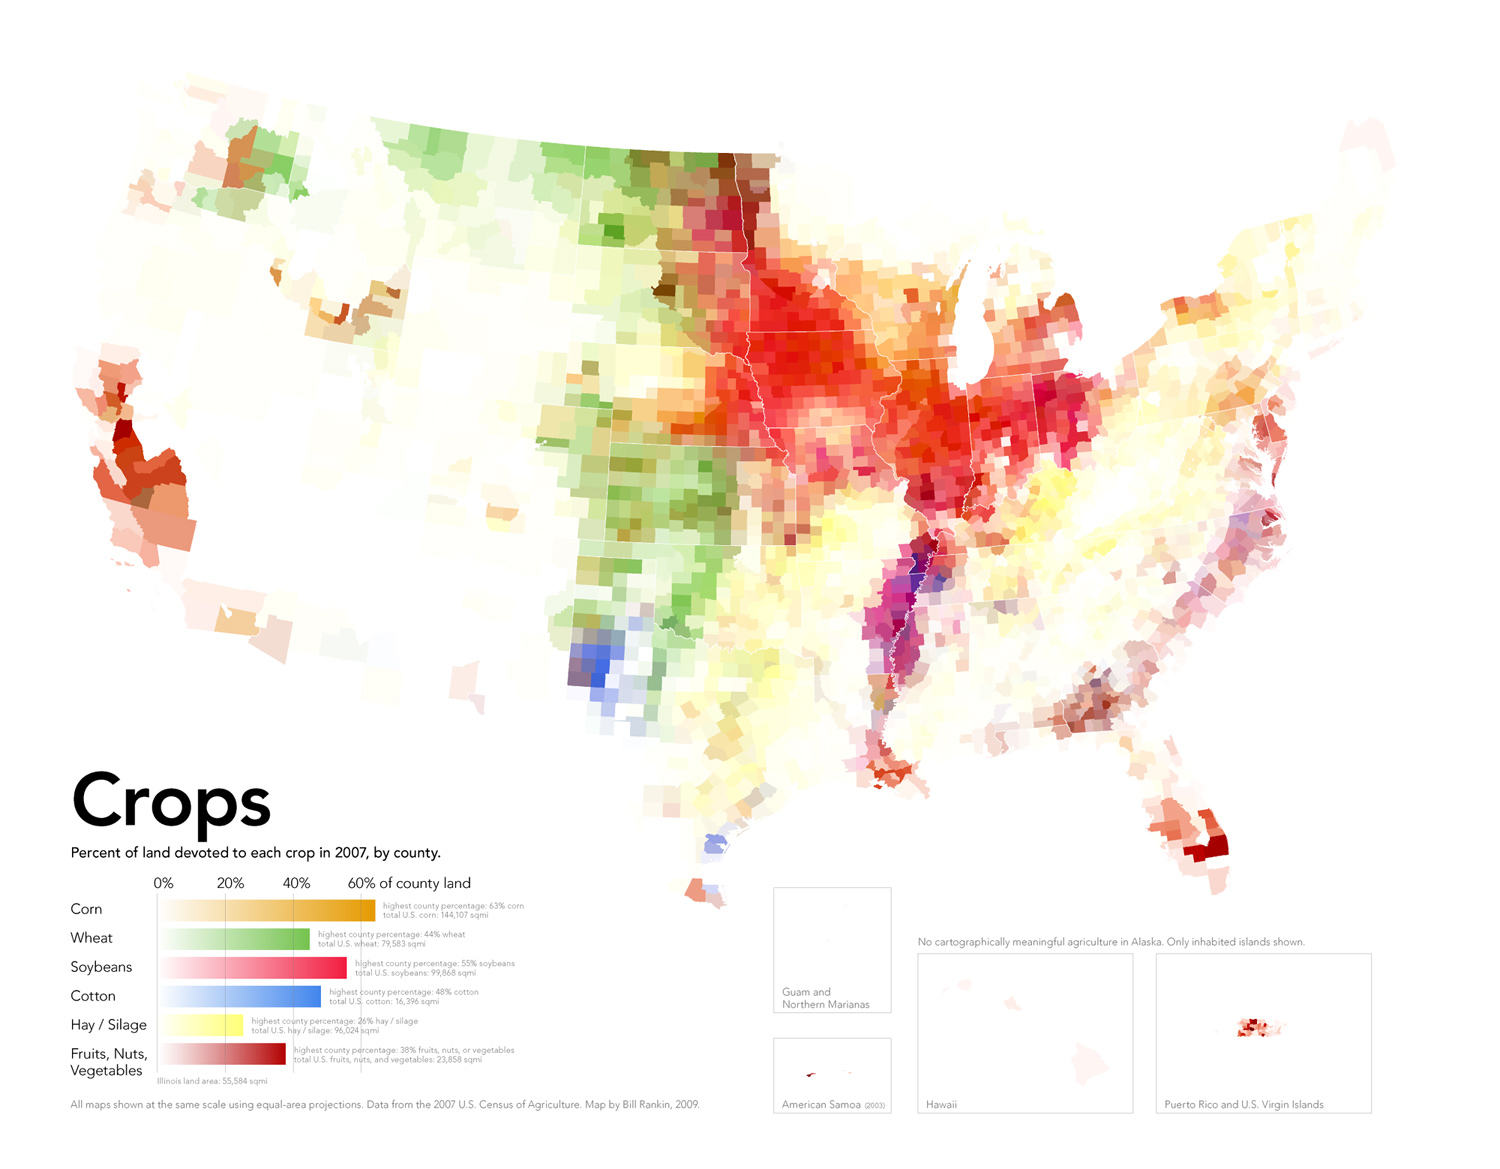 This is a map that shows the percent of land devoted to each agricultural crop in the United States. The data comes from the 2007 U.S. Census of Agriculture.